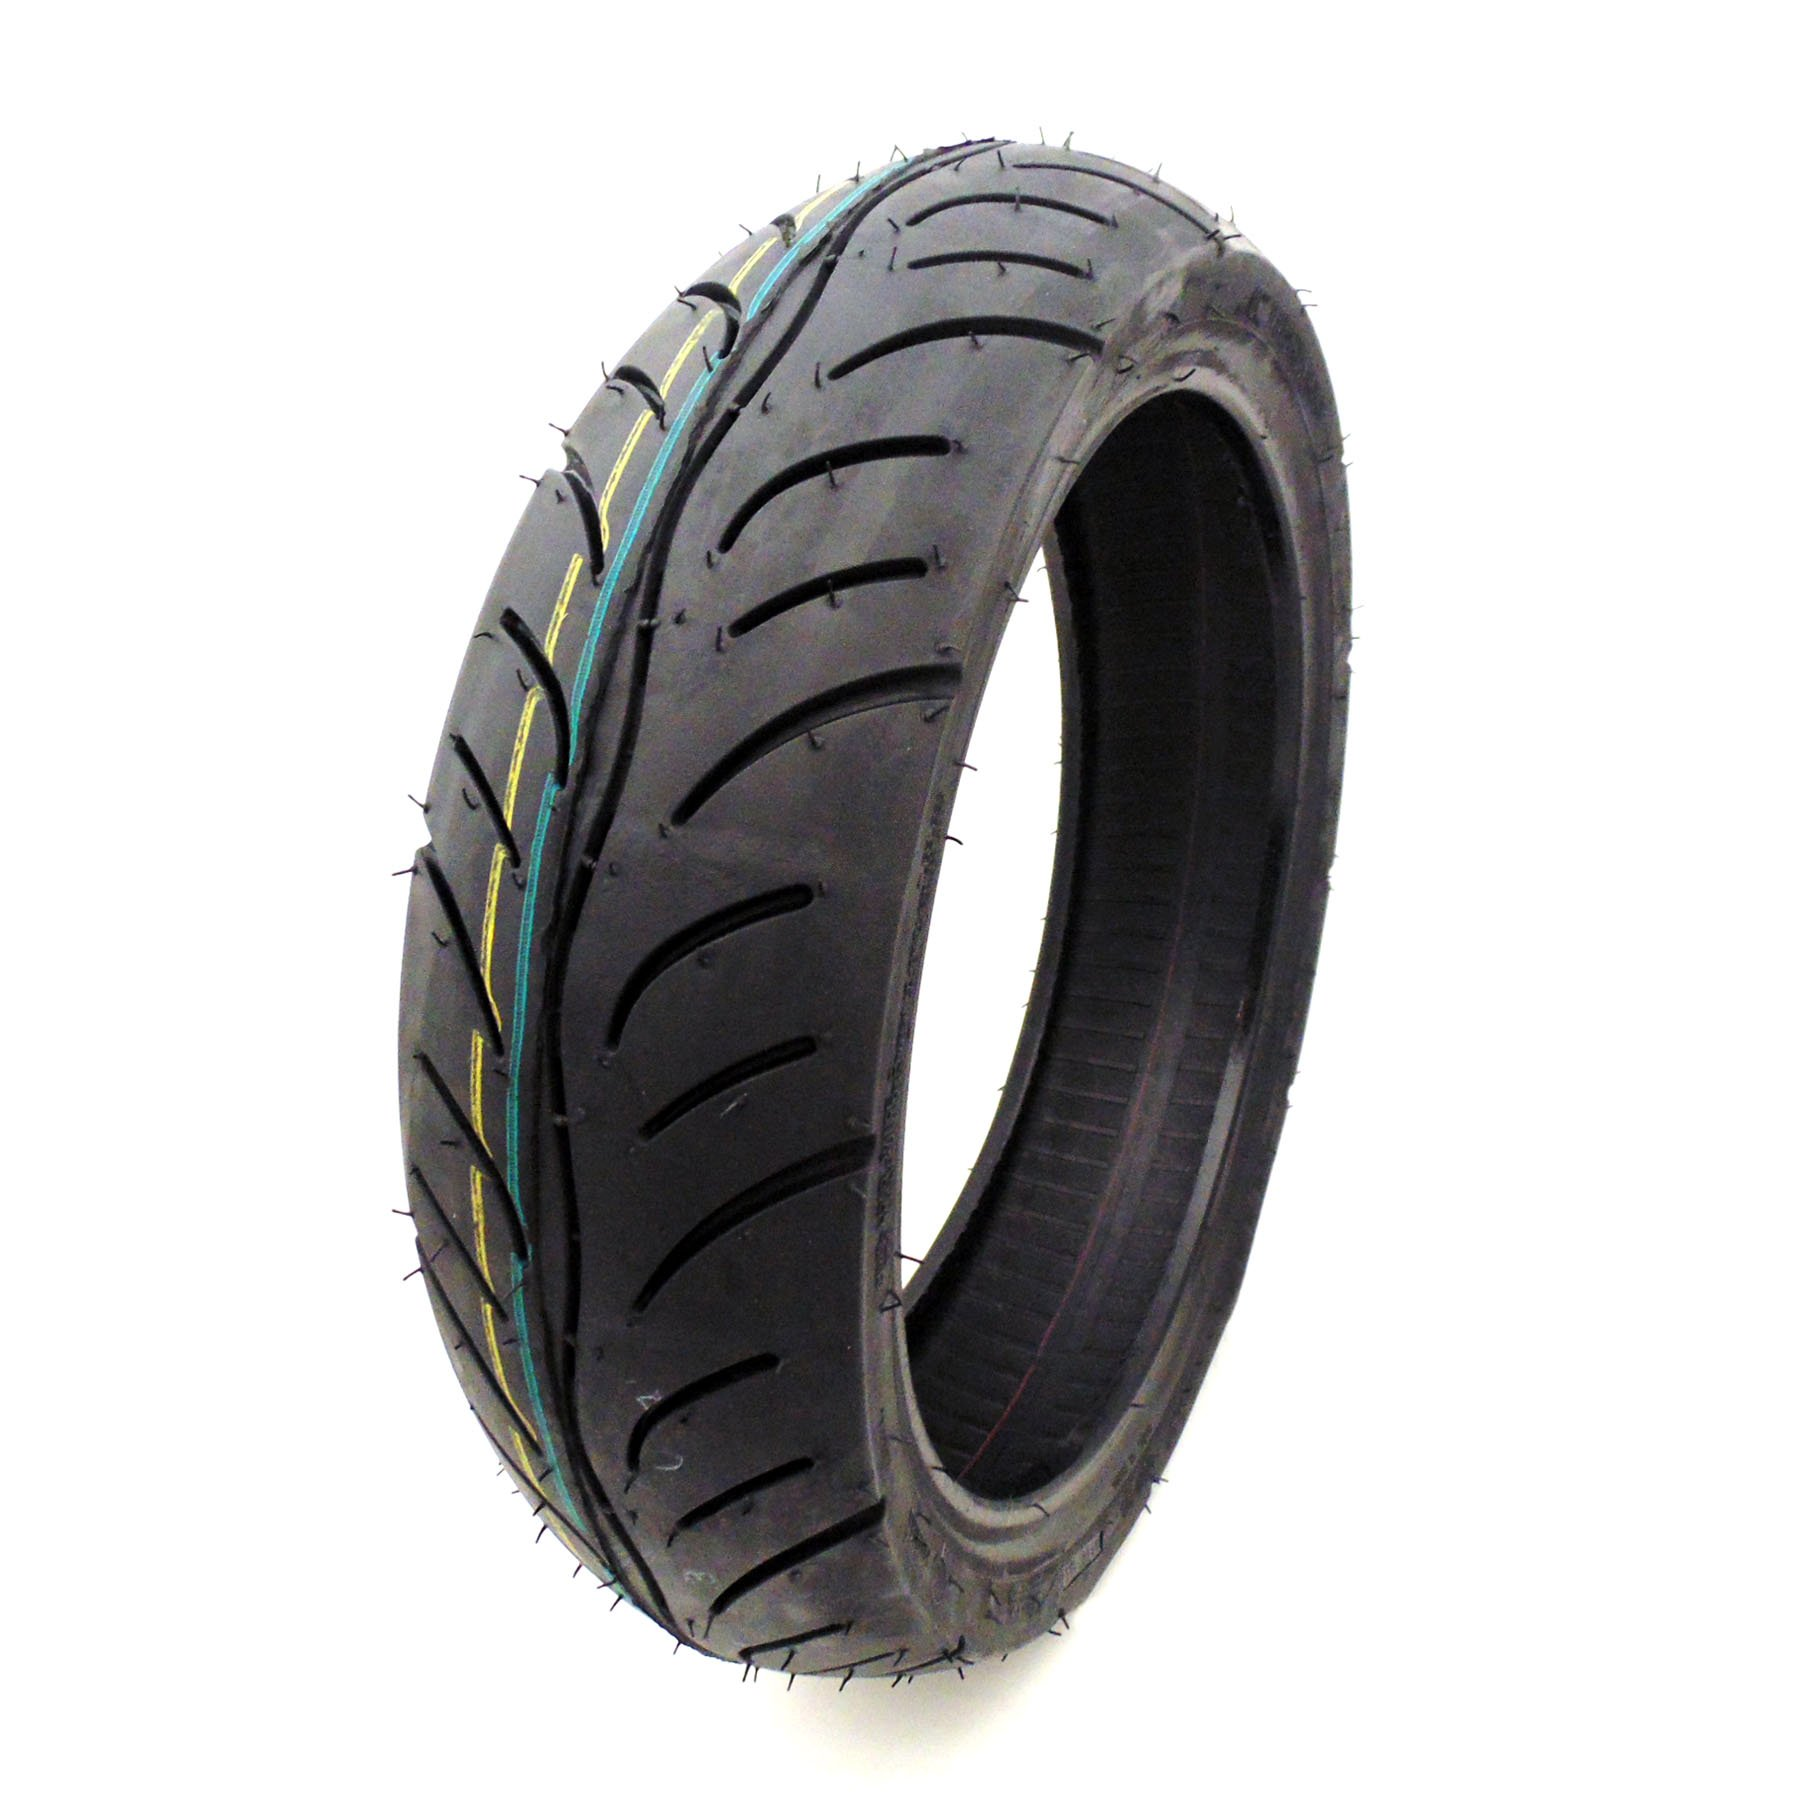 MMG 100/60-12 Tubeless Scooter Tire Front or Rear Street Tread 12 inches Rim Fresh Rubber by MMG